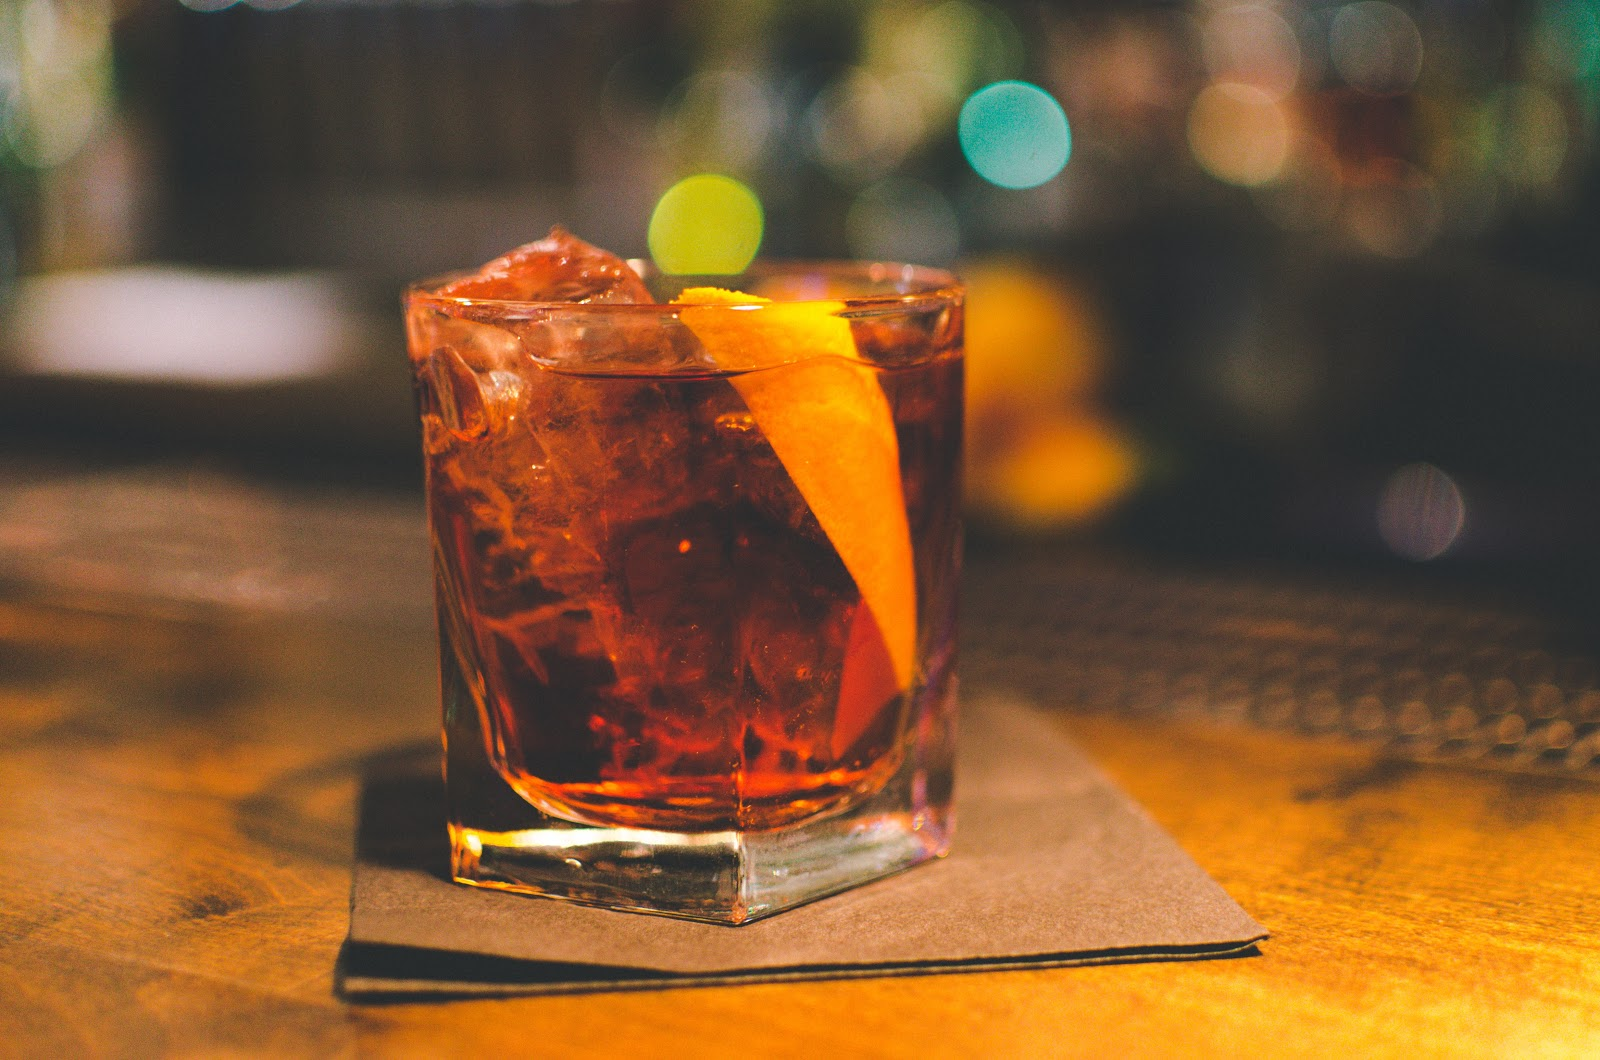 A negroni cocktail served with a slice of orange peel